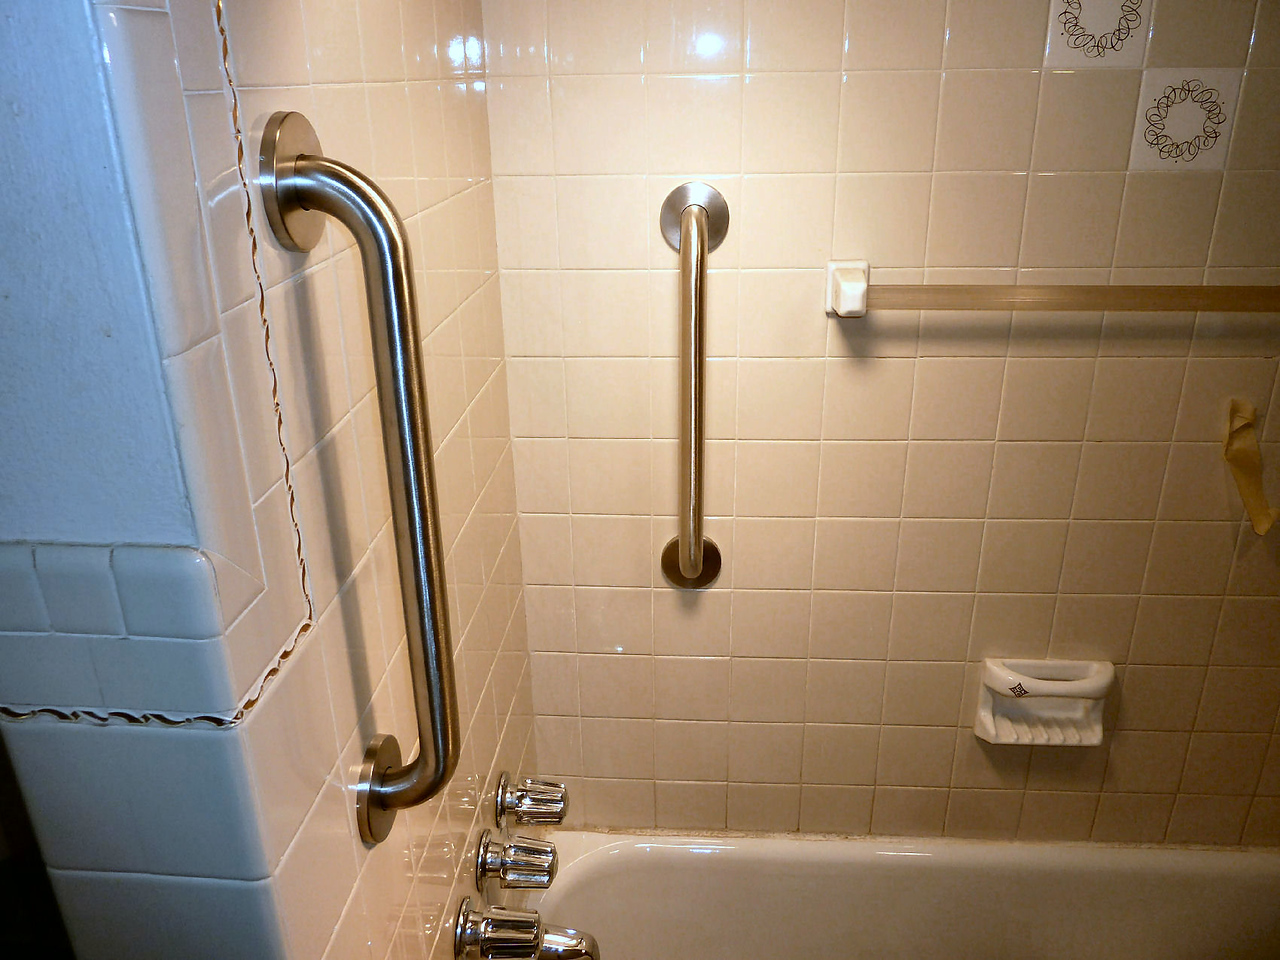 I attached 2 stainless Steel grab bars to the tile, enabling her to steady her entry.